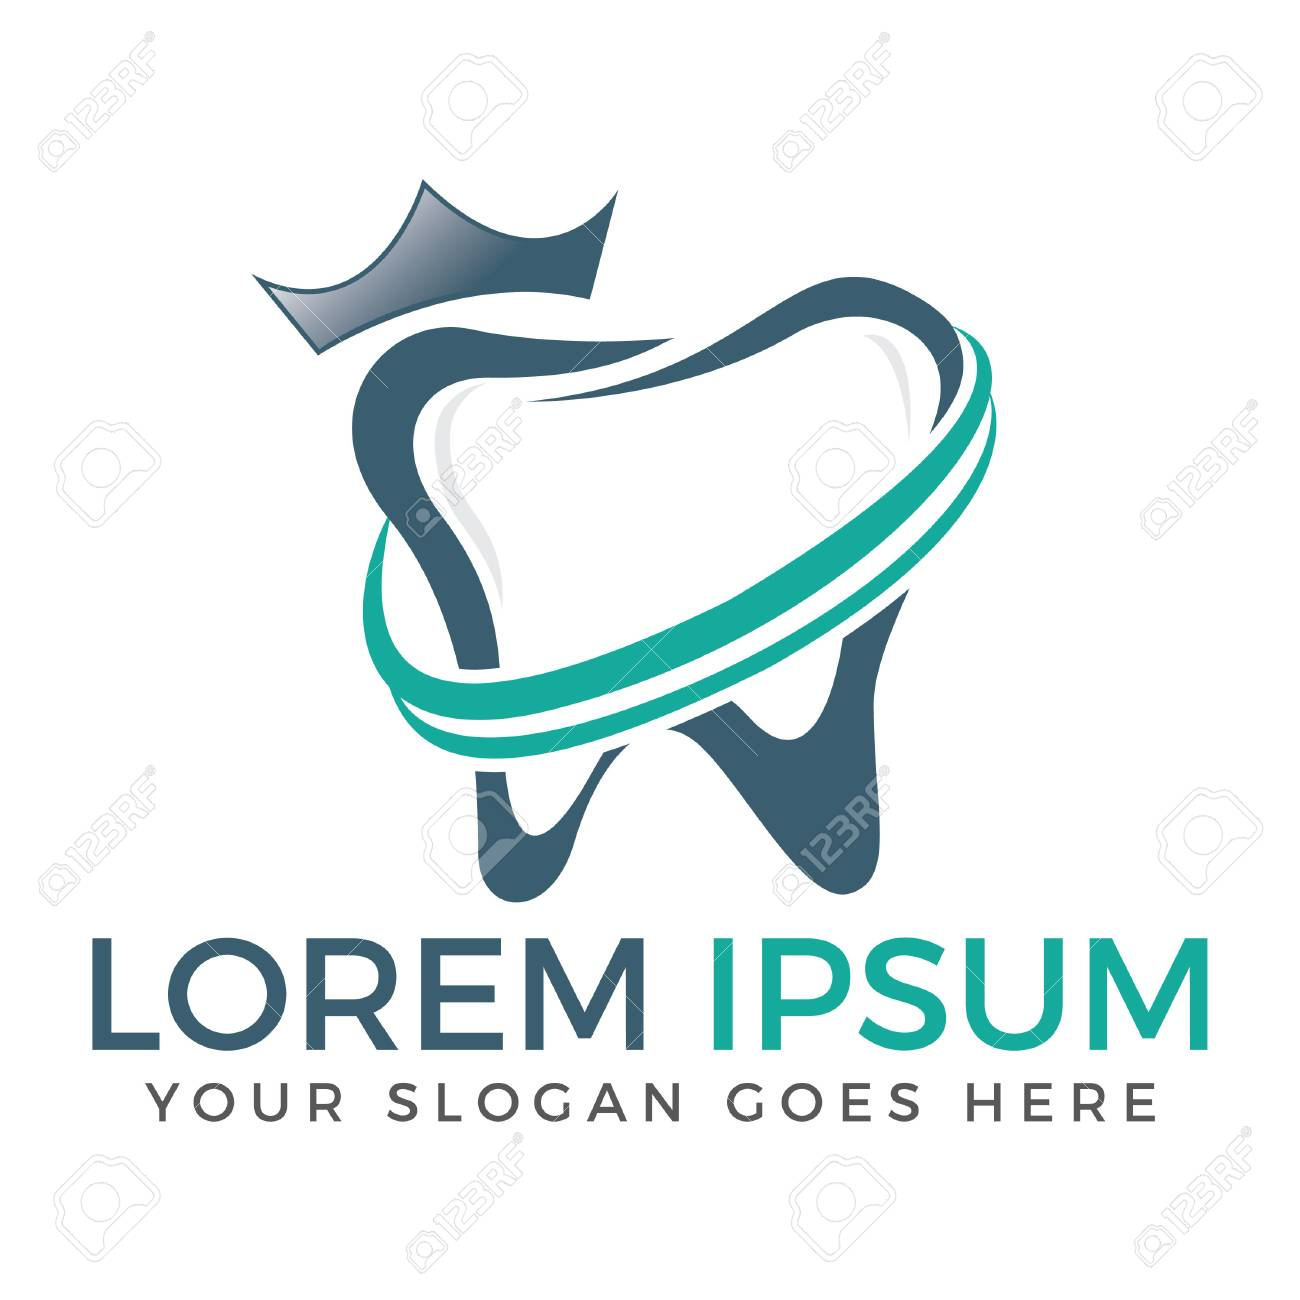 Dental Clinic Dentist Teeth Care Logo Design Royalty Free Cliparts Vectors And Stock Illustration Image 93448154